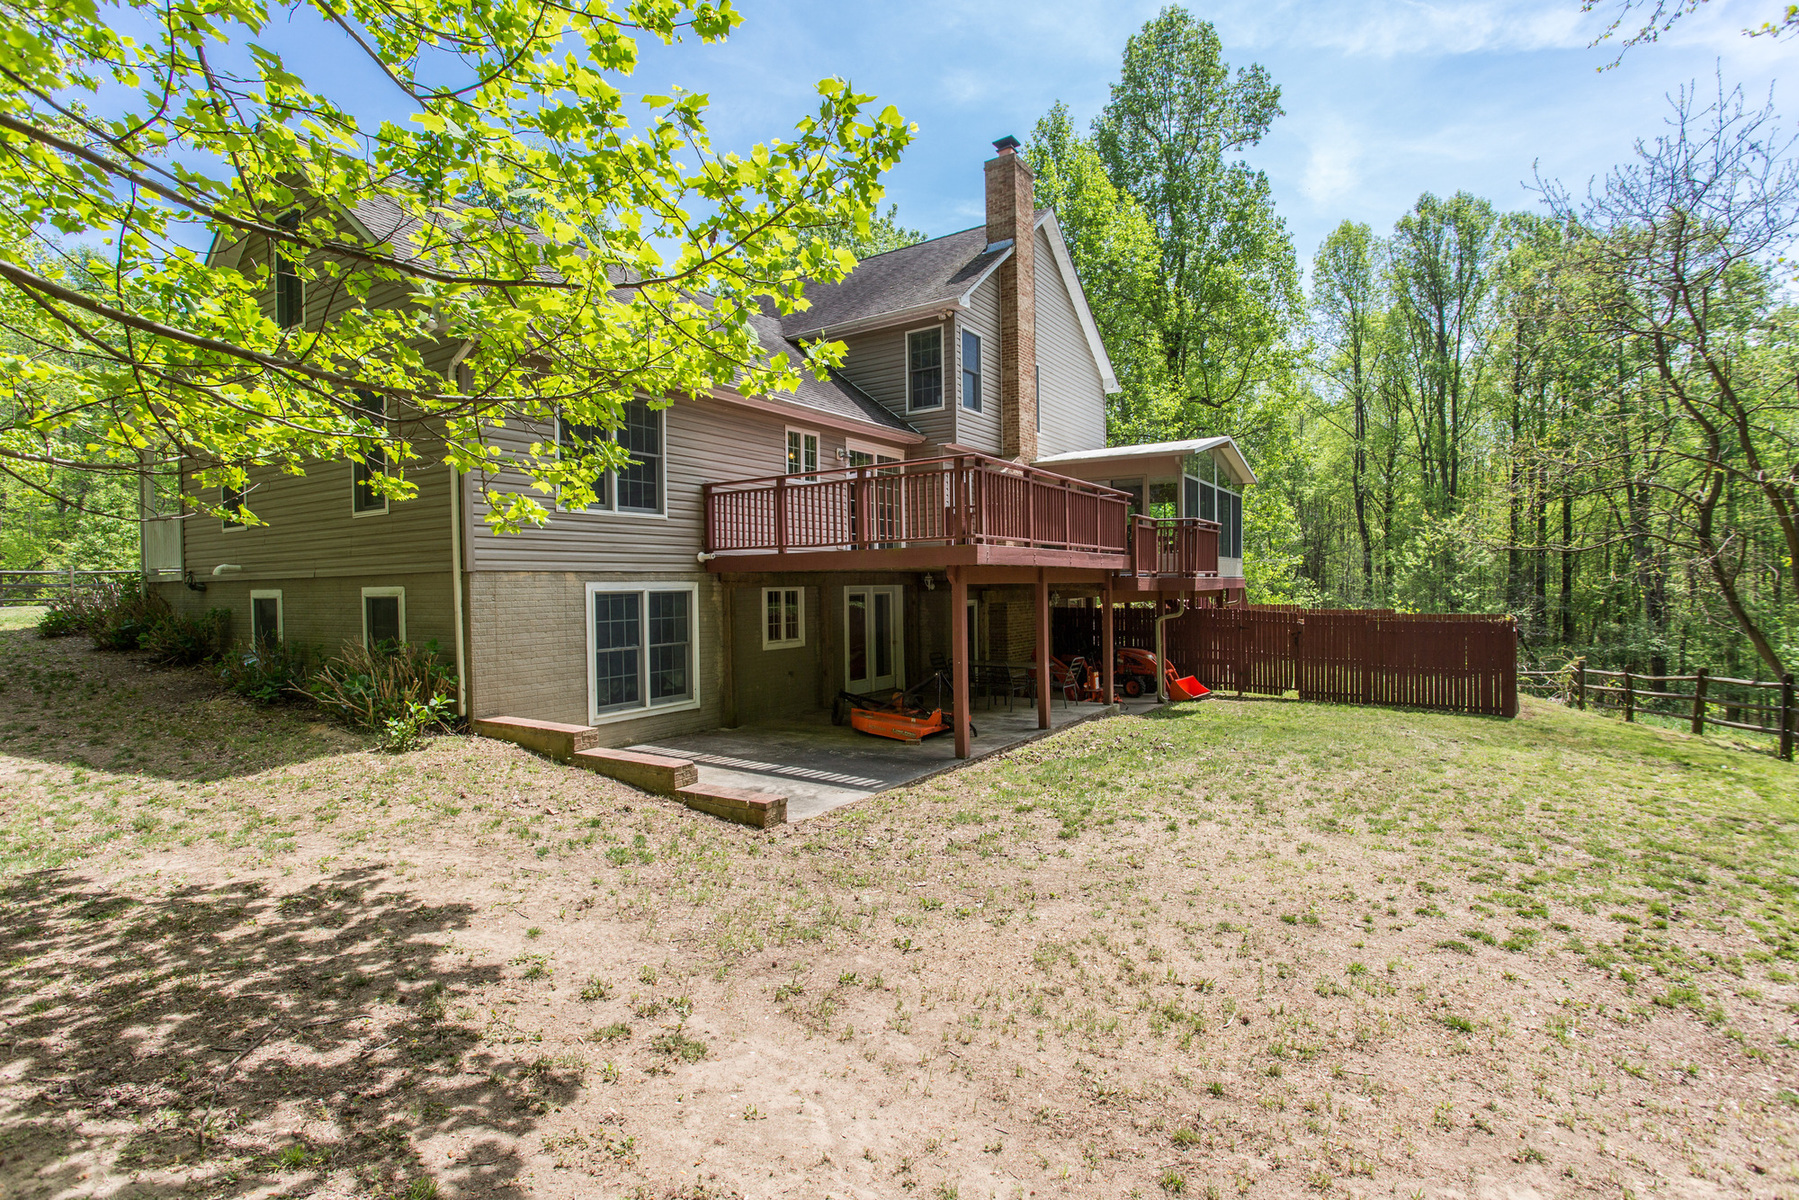 Additional photo for property listing at West End Farms 10607 Brookes Reserve Rd Upper Marlboro, Мэриленд 20772 Соединенные Штаты